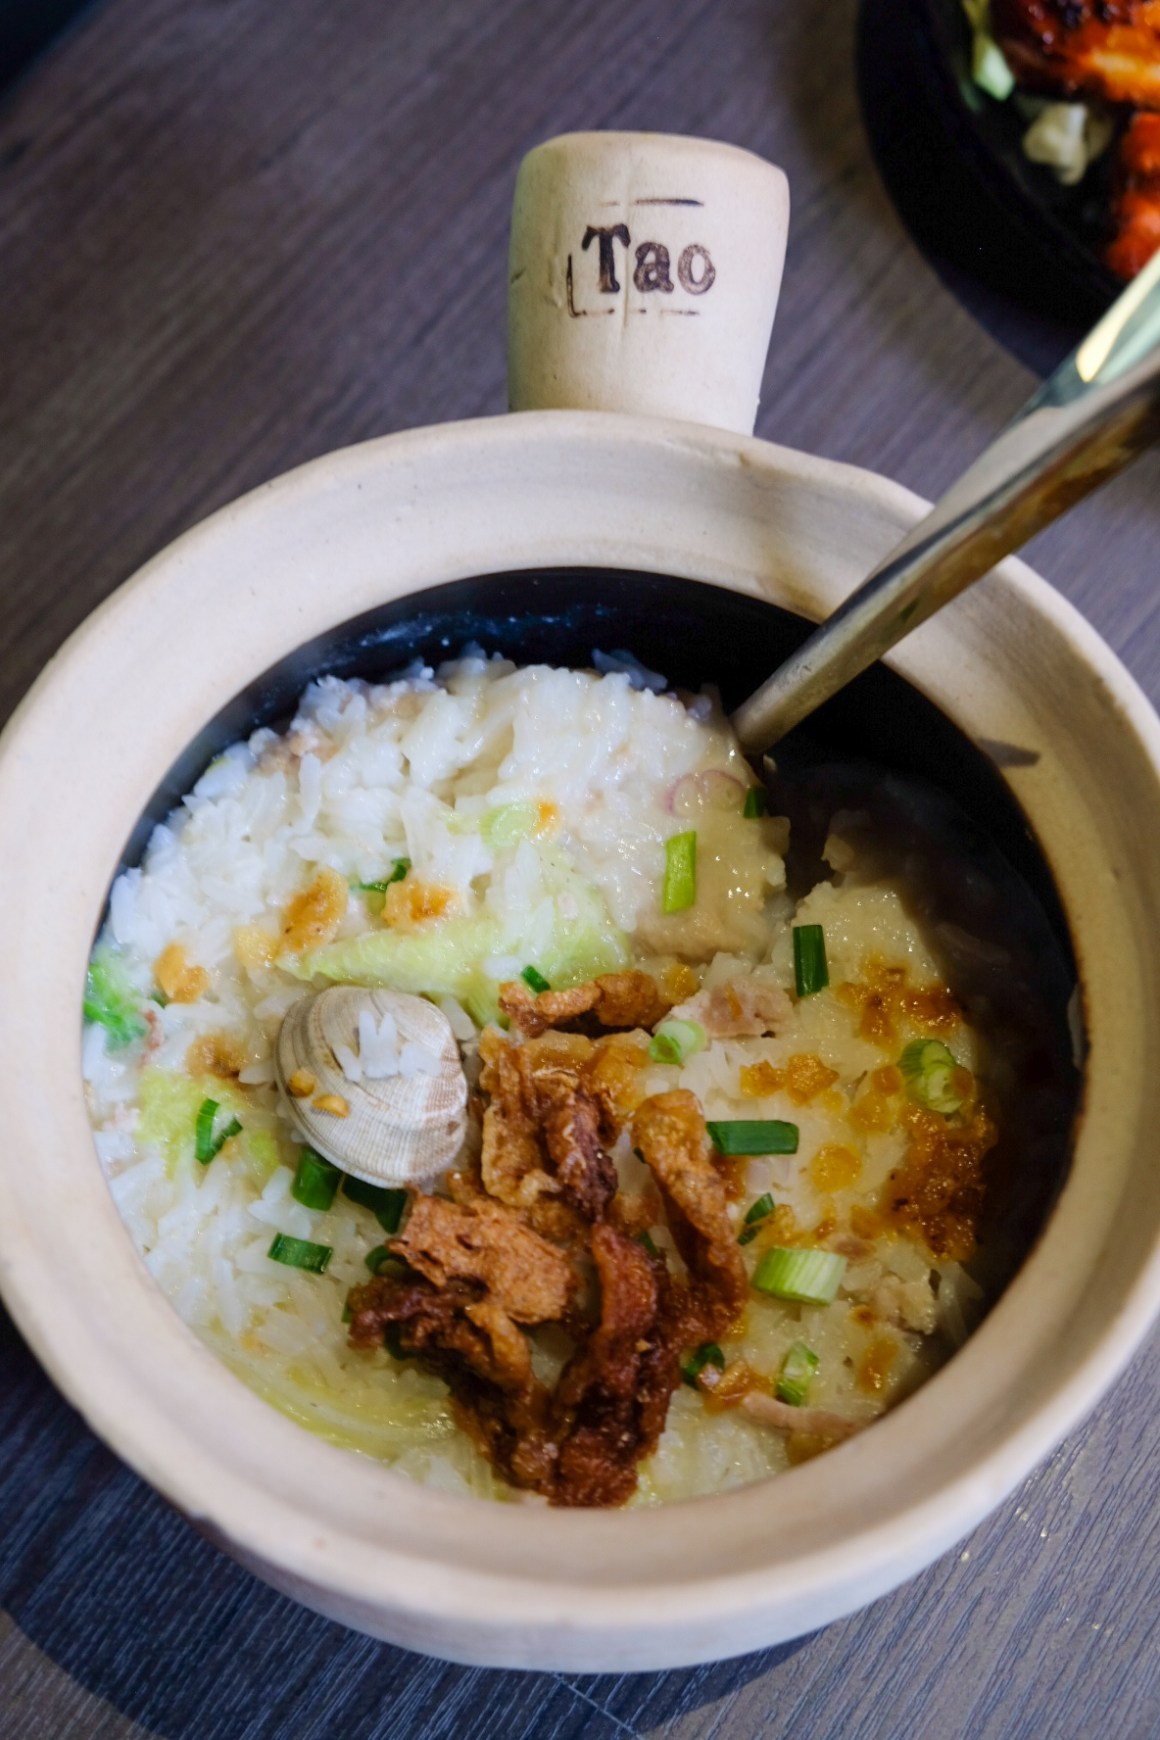 Xin Tekka The Food Hall At Tekka Place - Teochew Special Porridge by Hosay's Delicacy